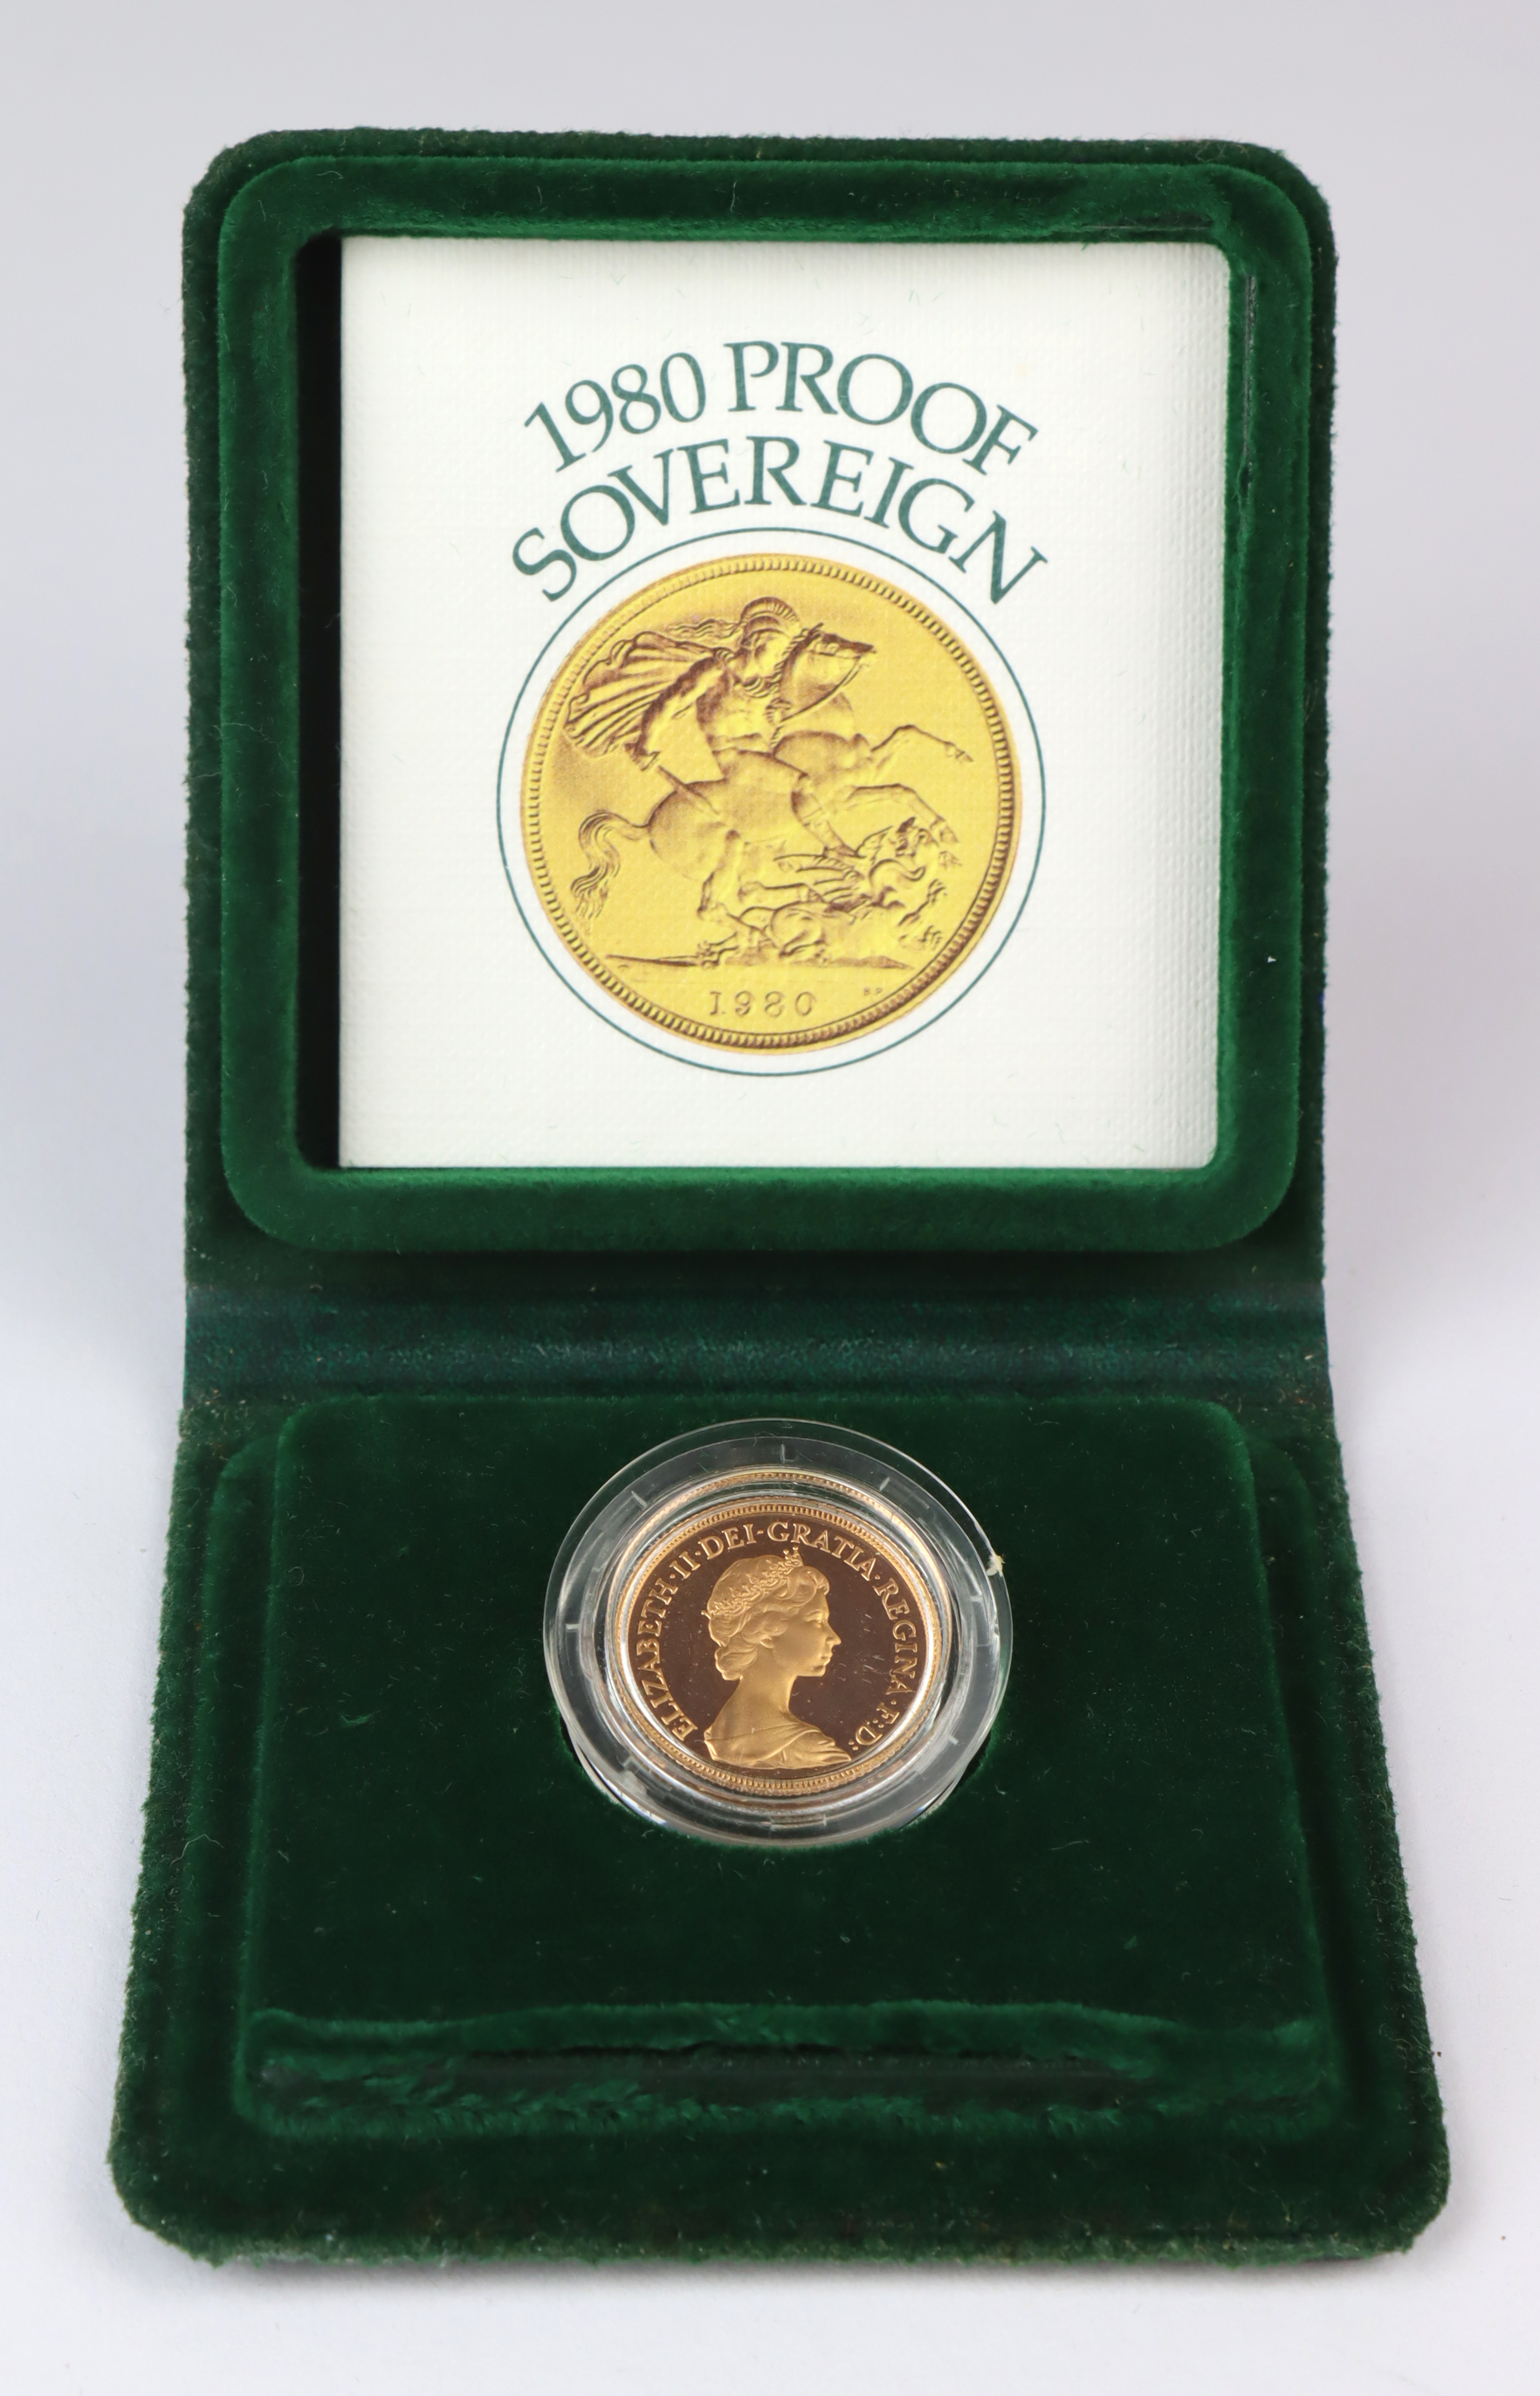 Sovereign 1980 Proof FDC boxed as issued